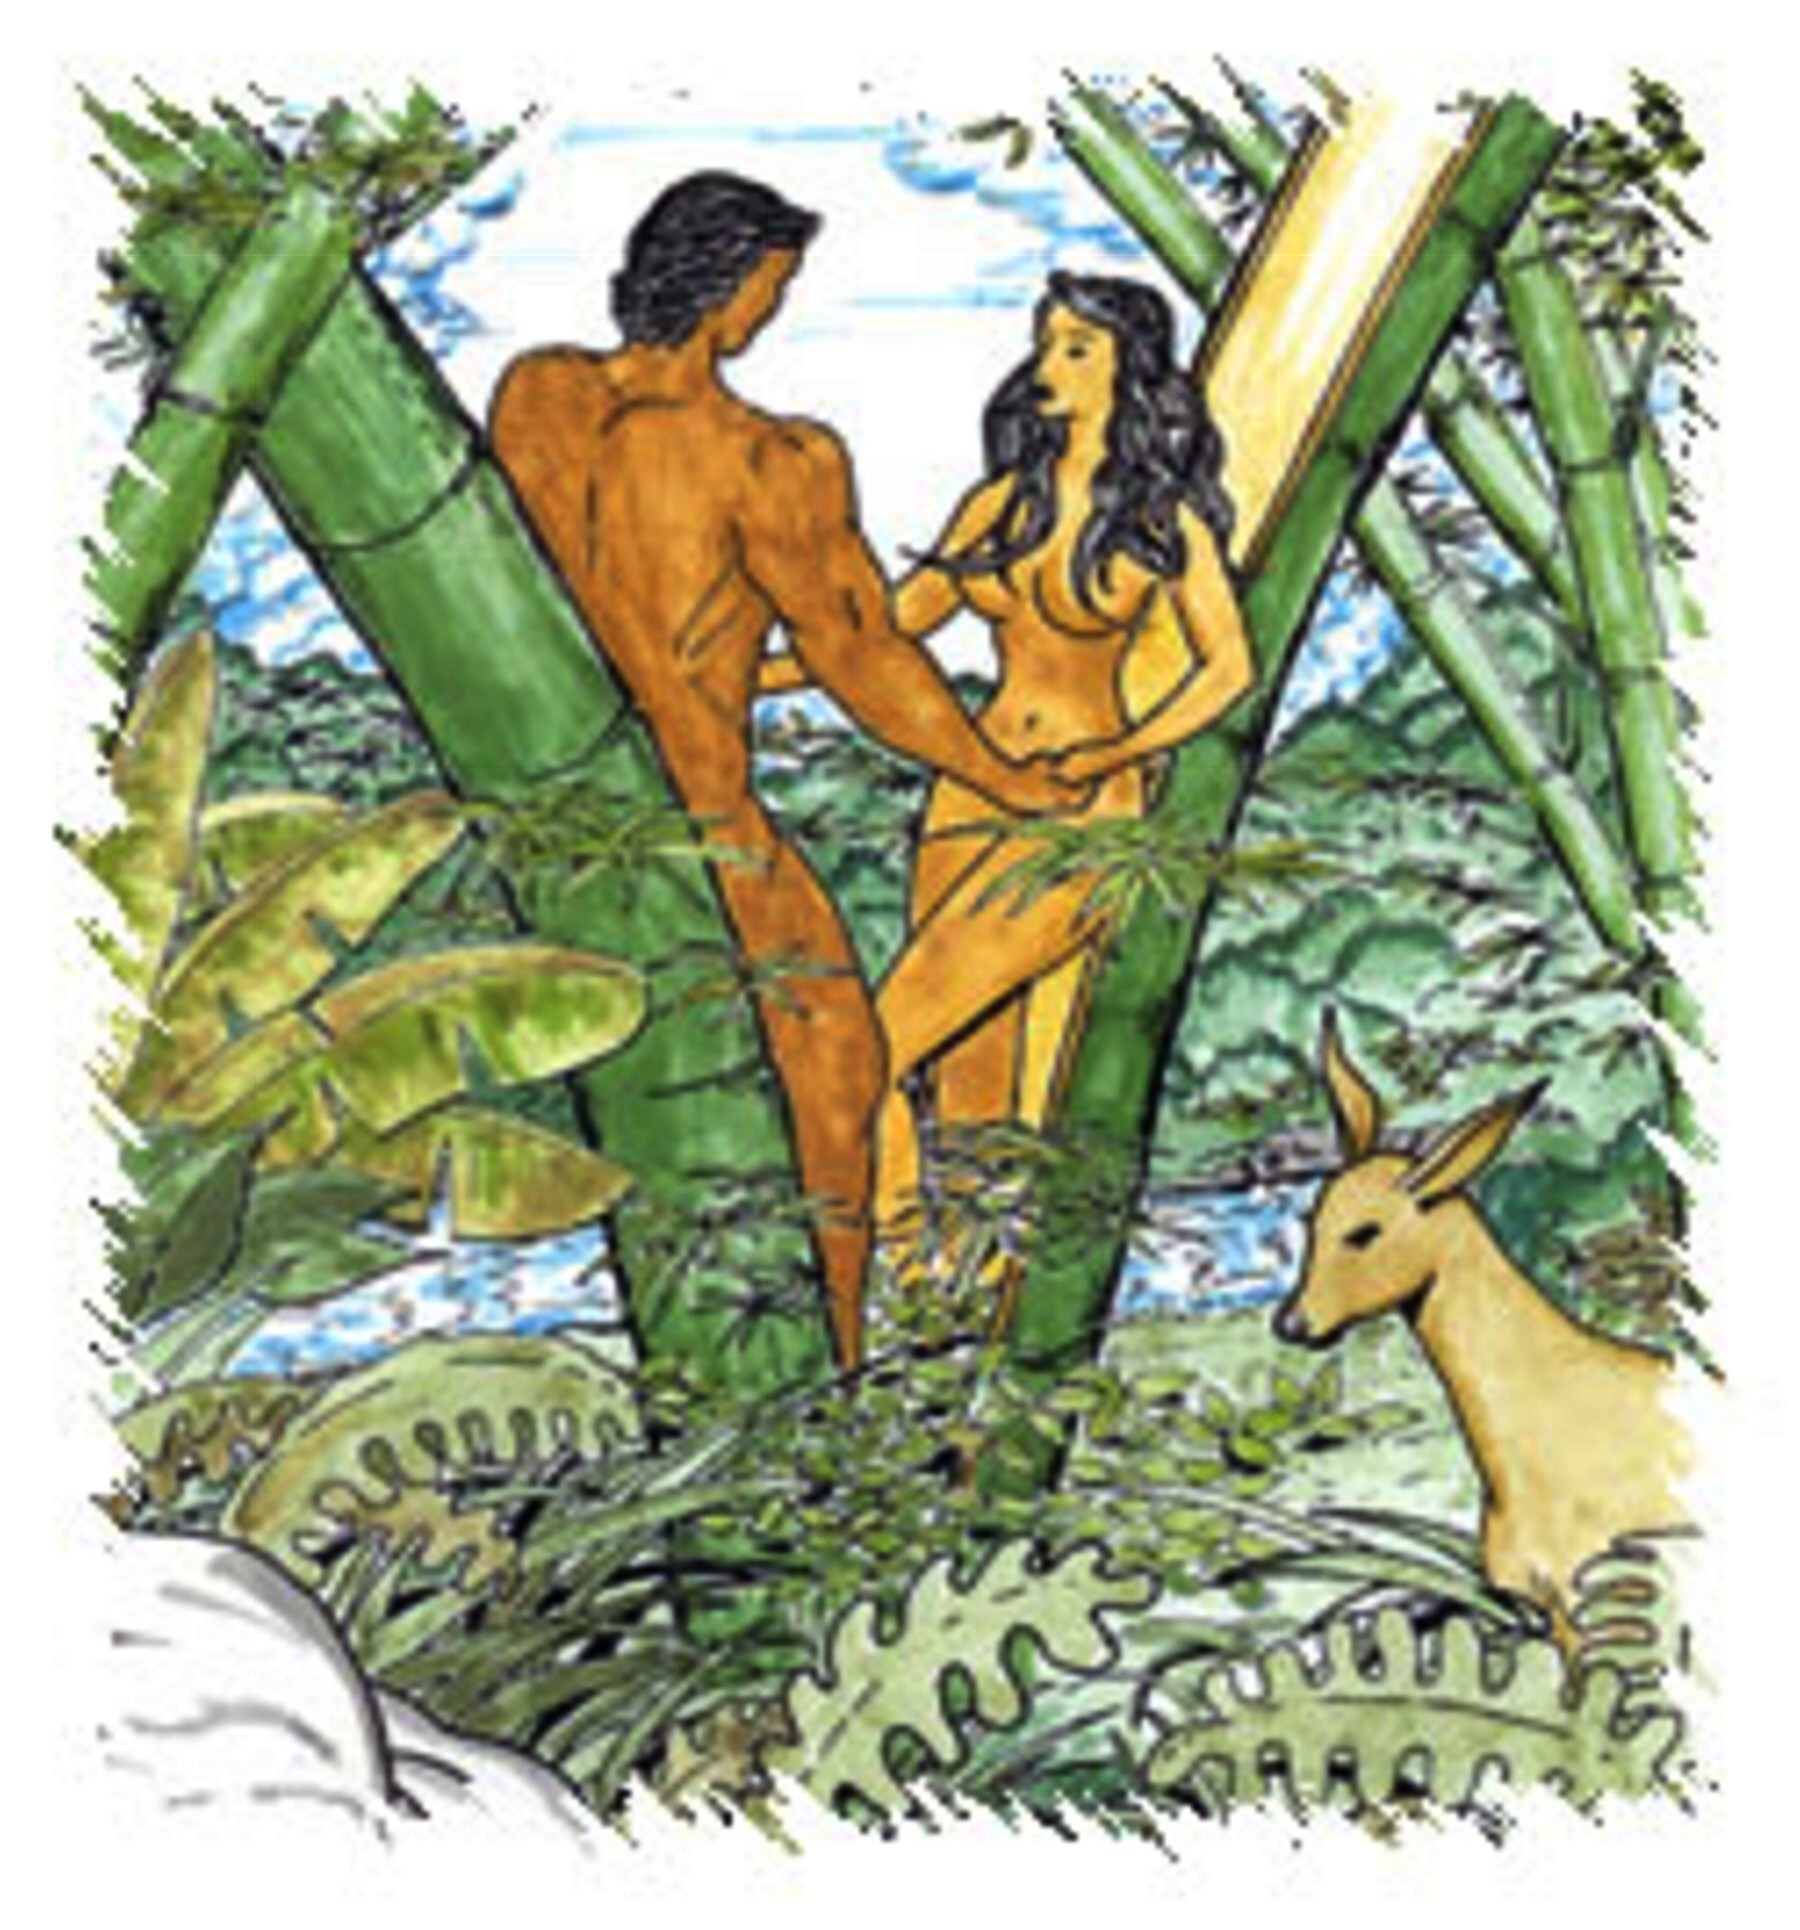 Description Malakas and Maganda Emerging from Bamboo BambooMan.jpg